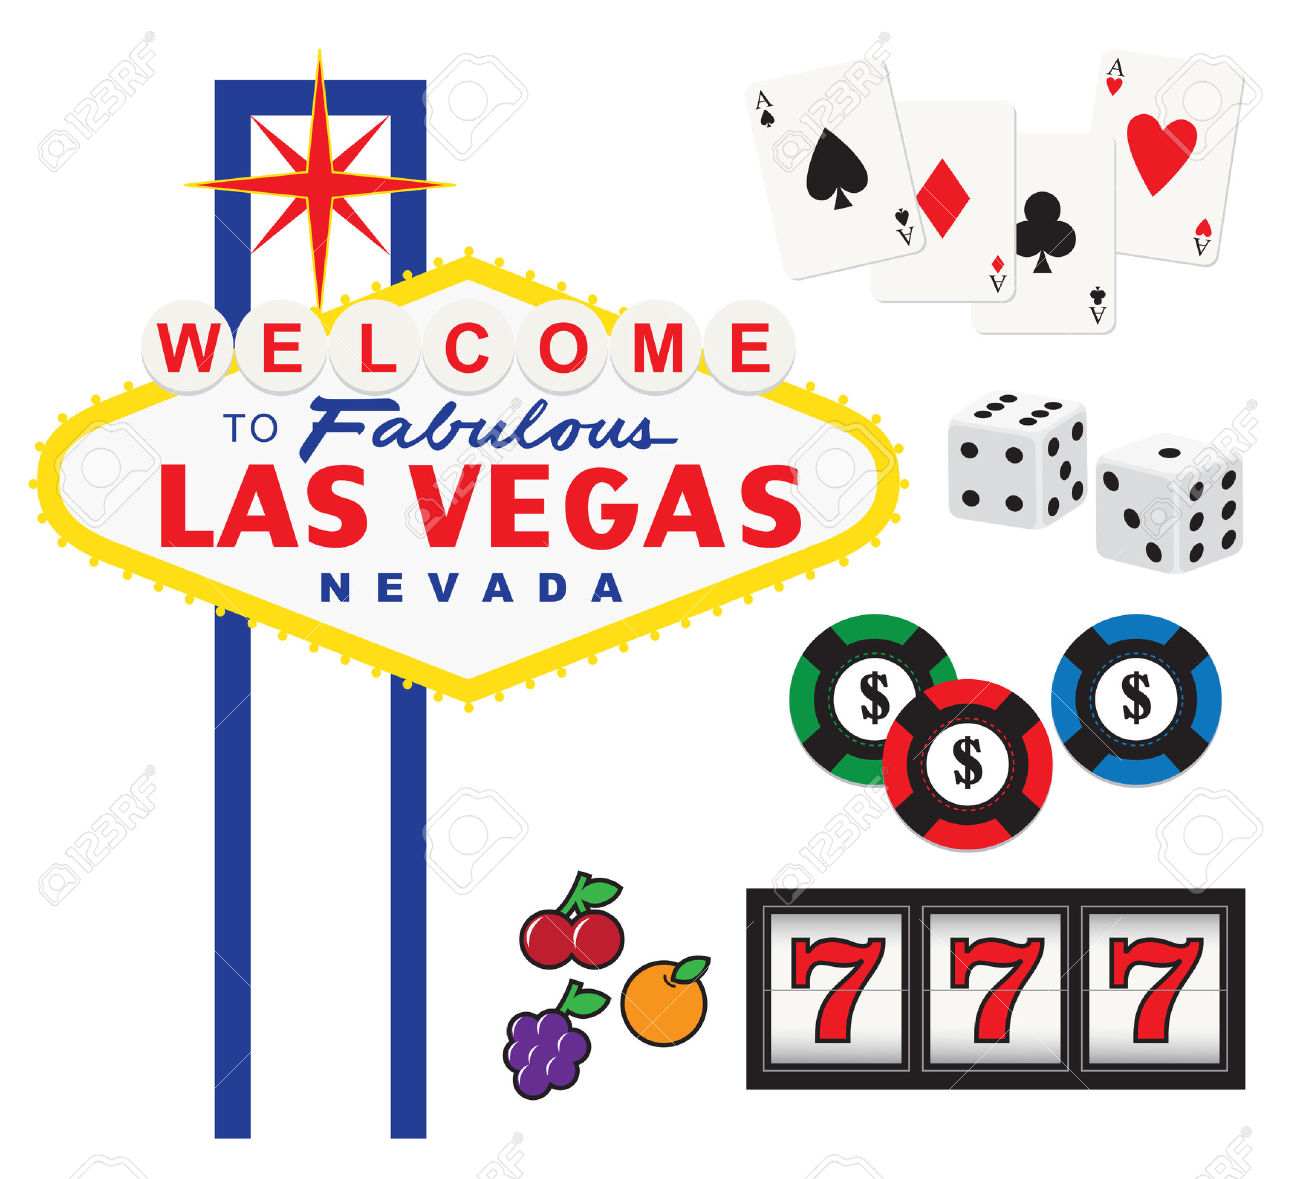 Vegas plane clipart banner black and white Las Vegas Stock Photos & Pictures. Royalty Free Las Vegas Images ... banner black and white